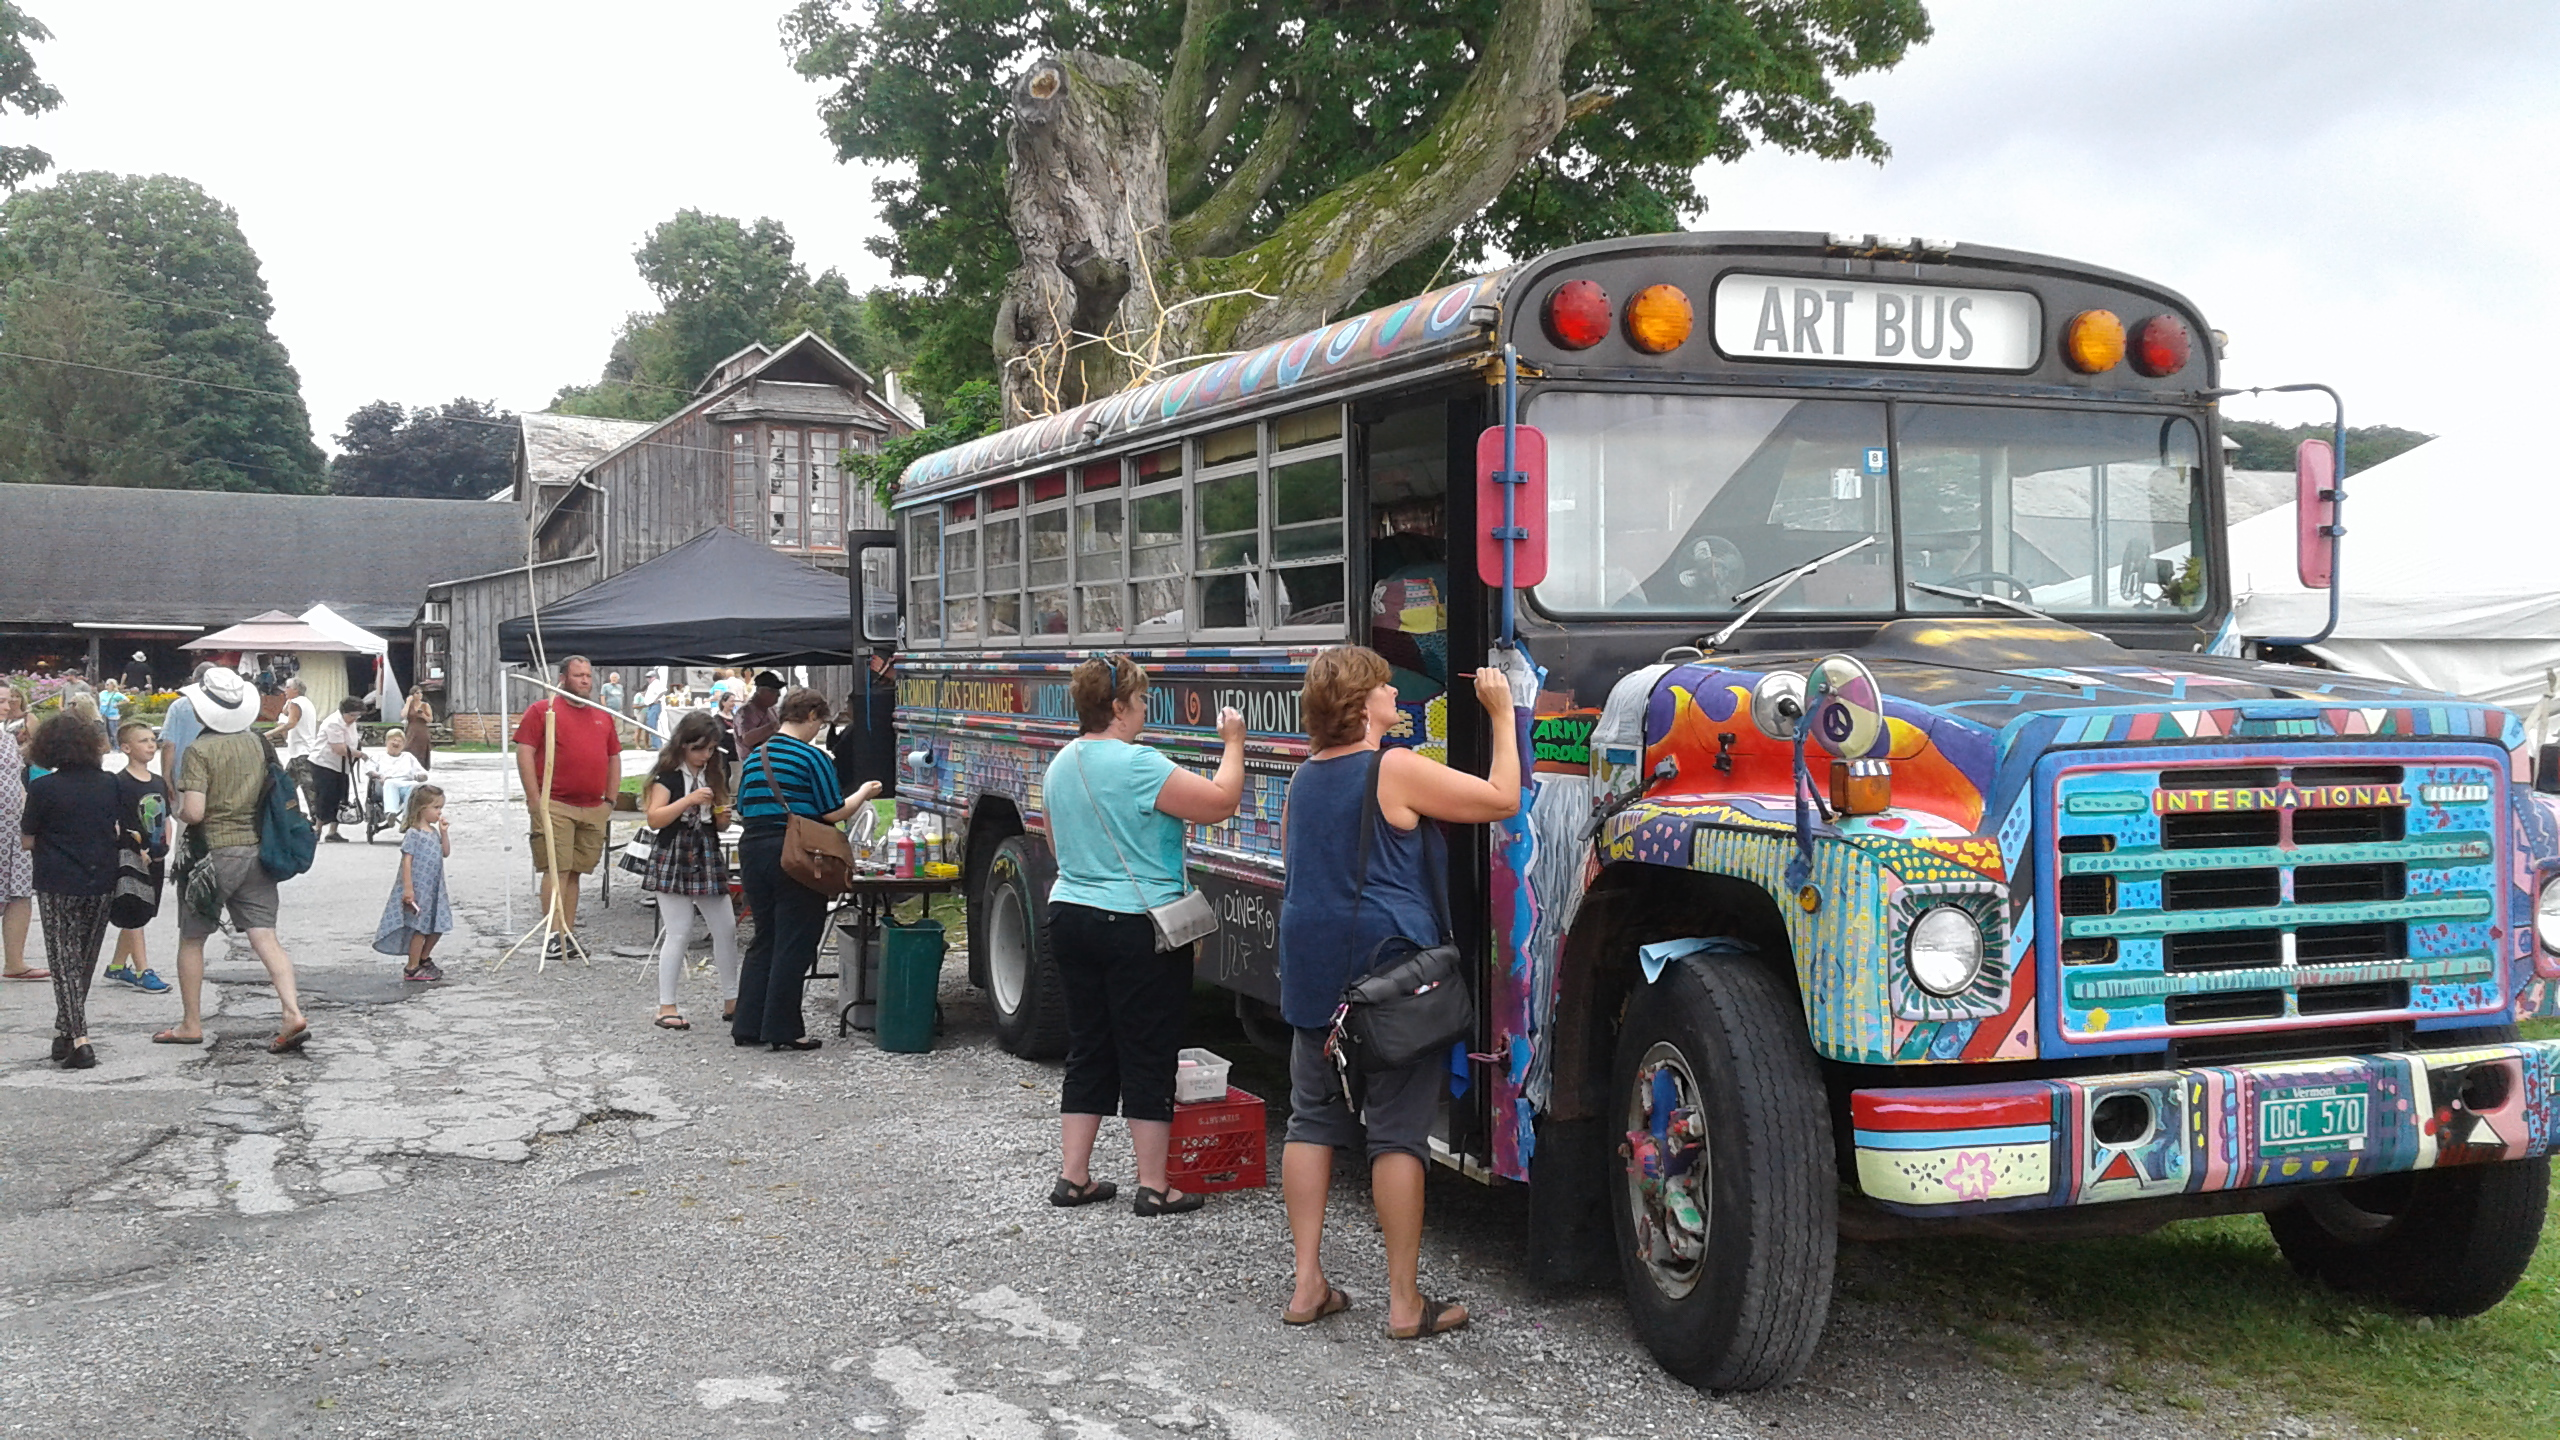 individuals painting an art bus